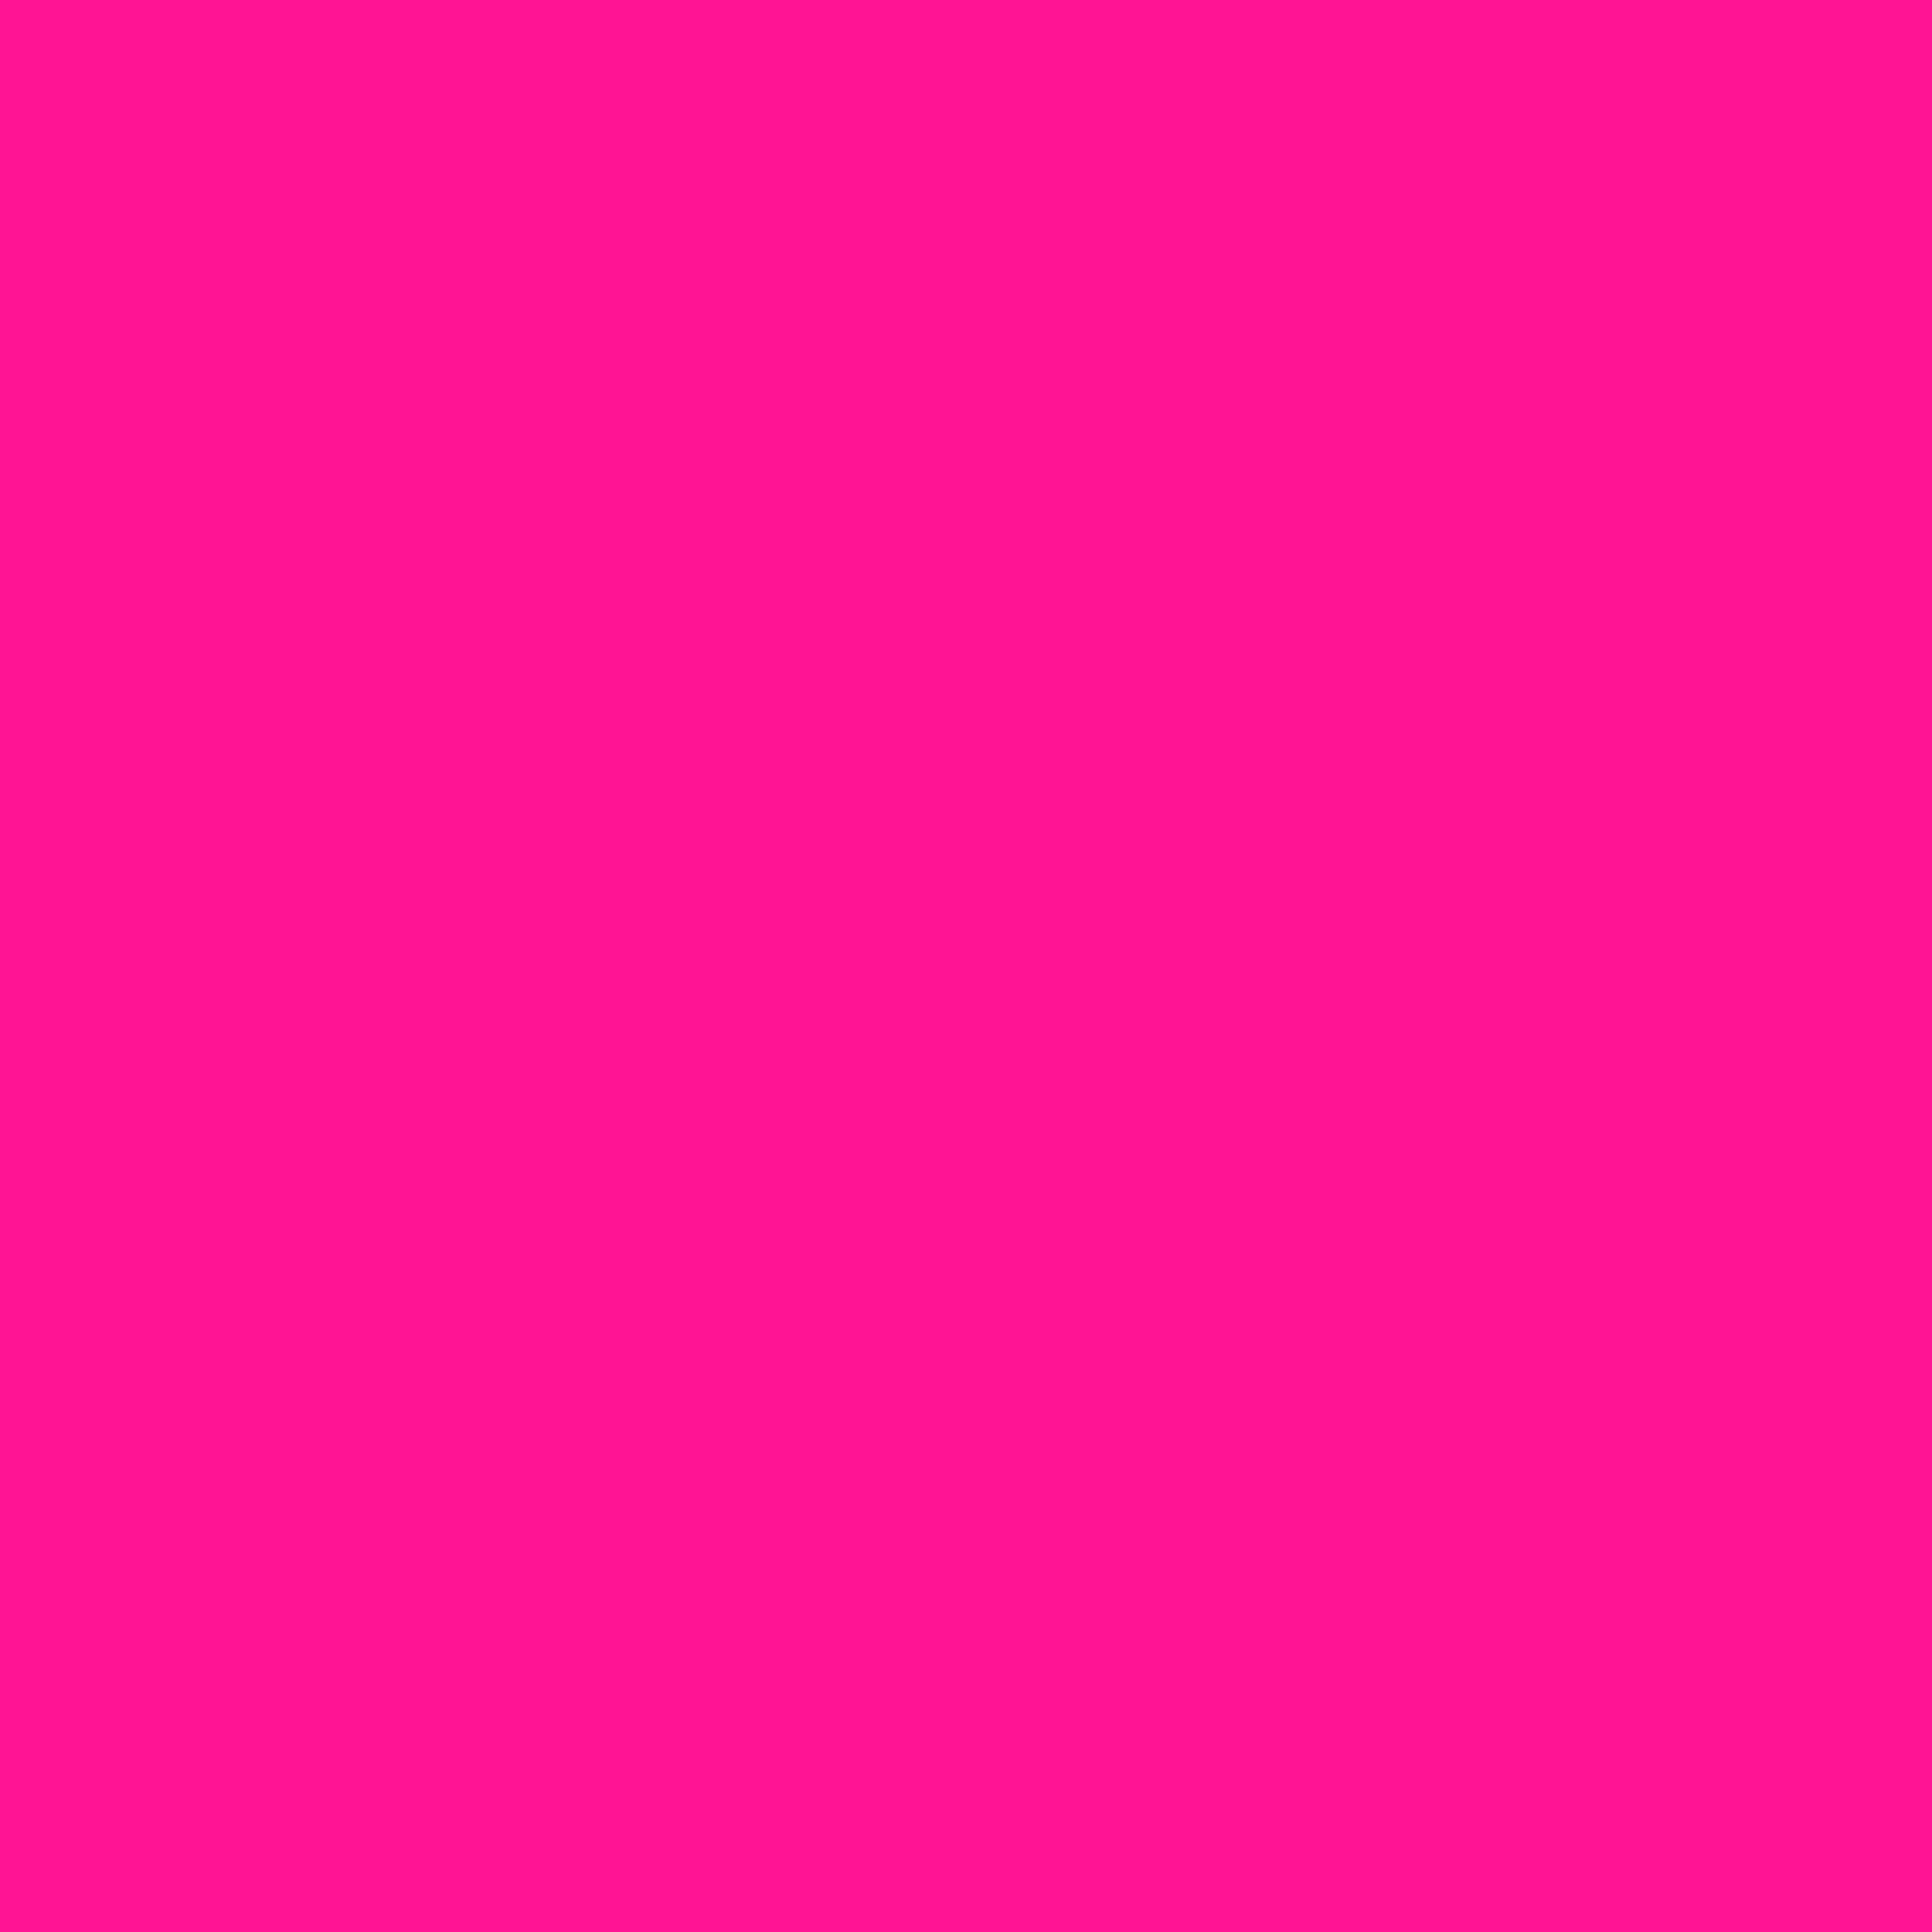 2732x2732 Deep Pink Solid Color Background